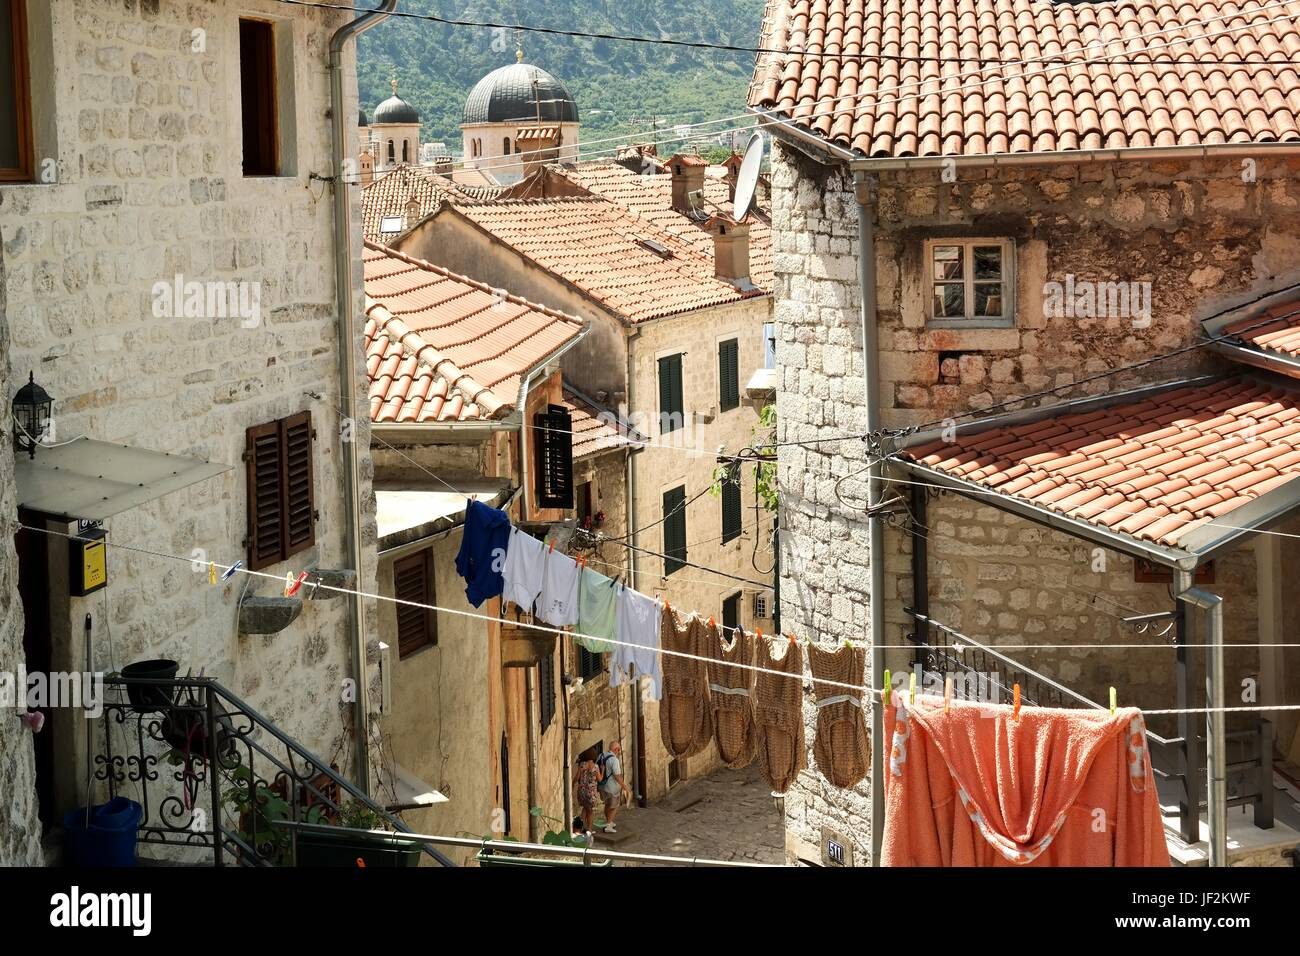 Old Town of Kotor, Montenegro - Stock Image